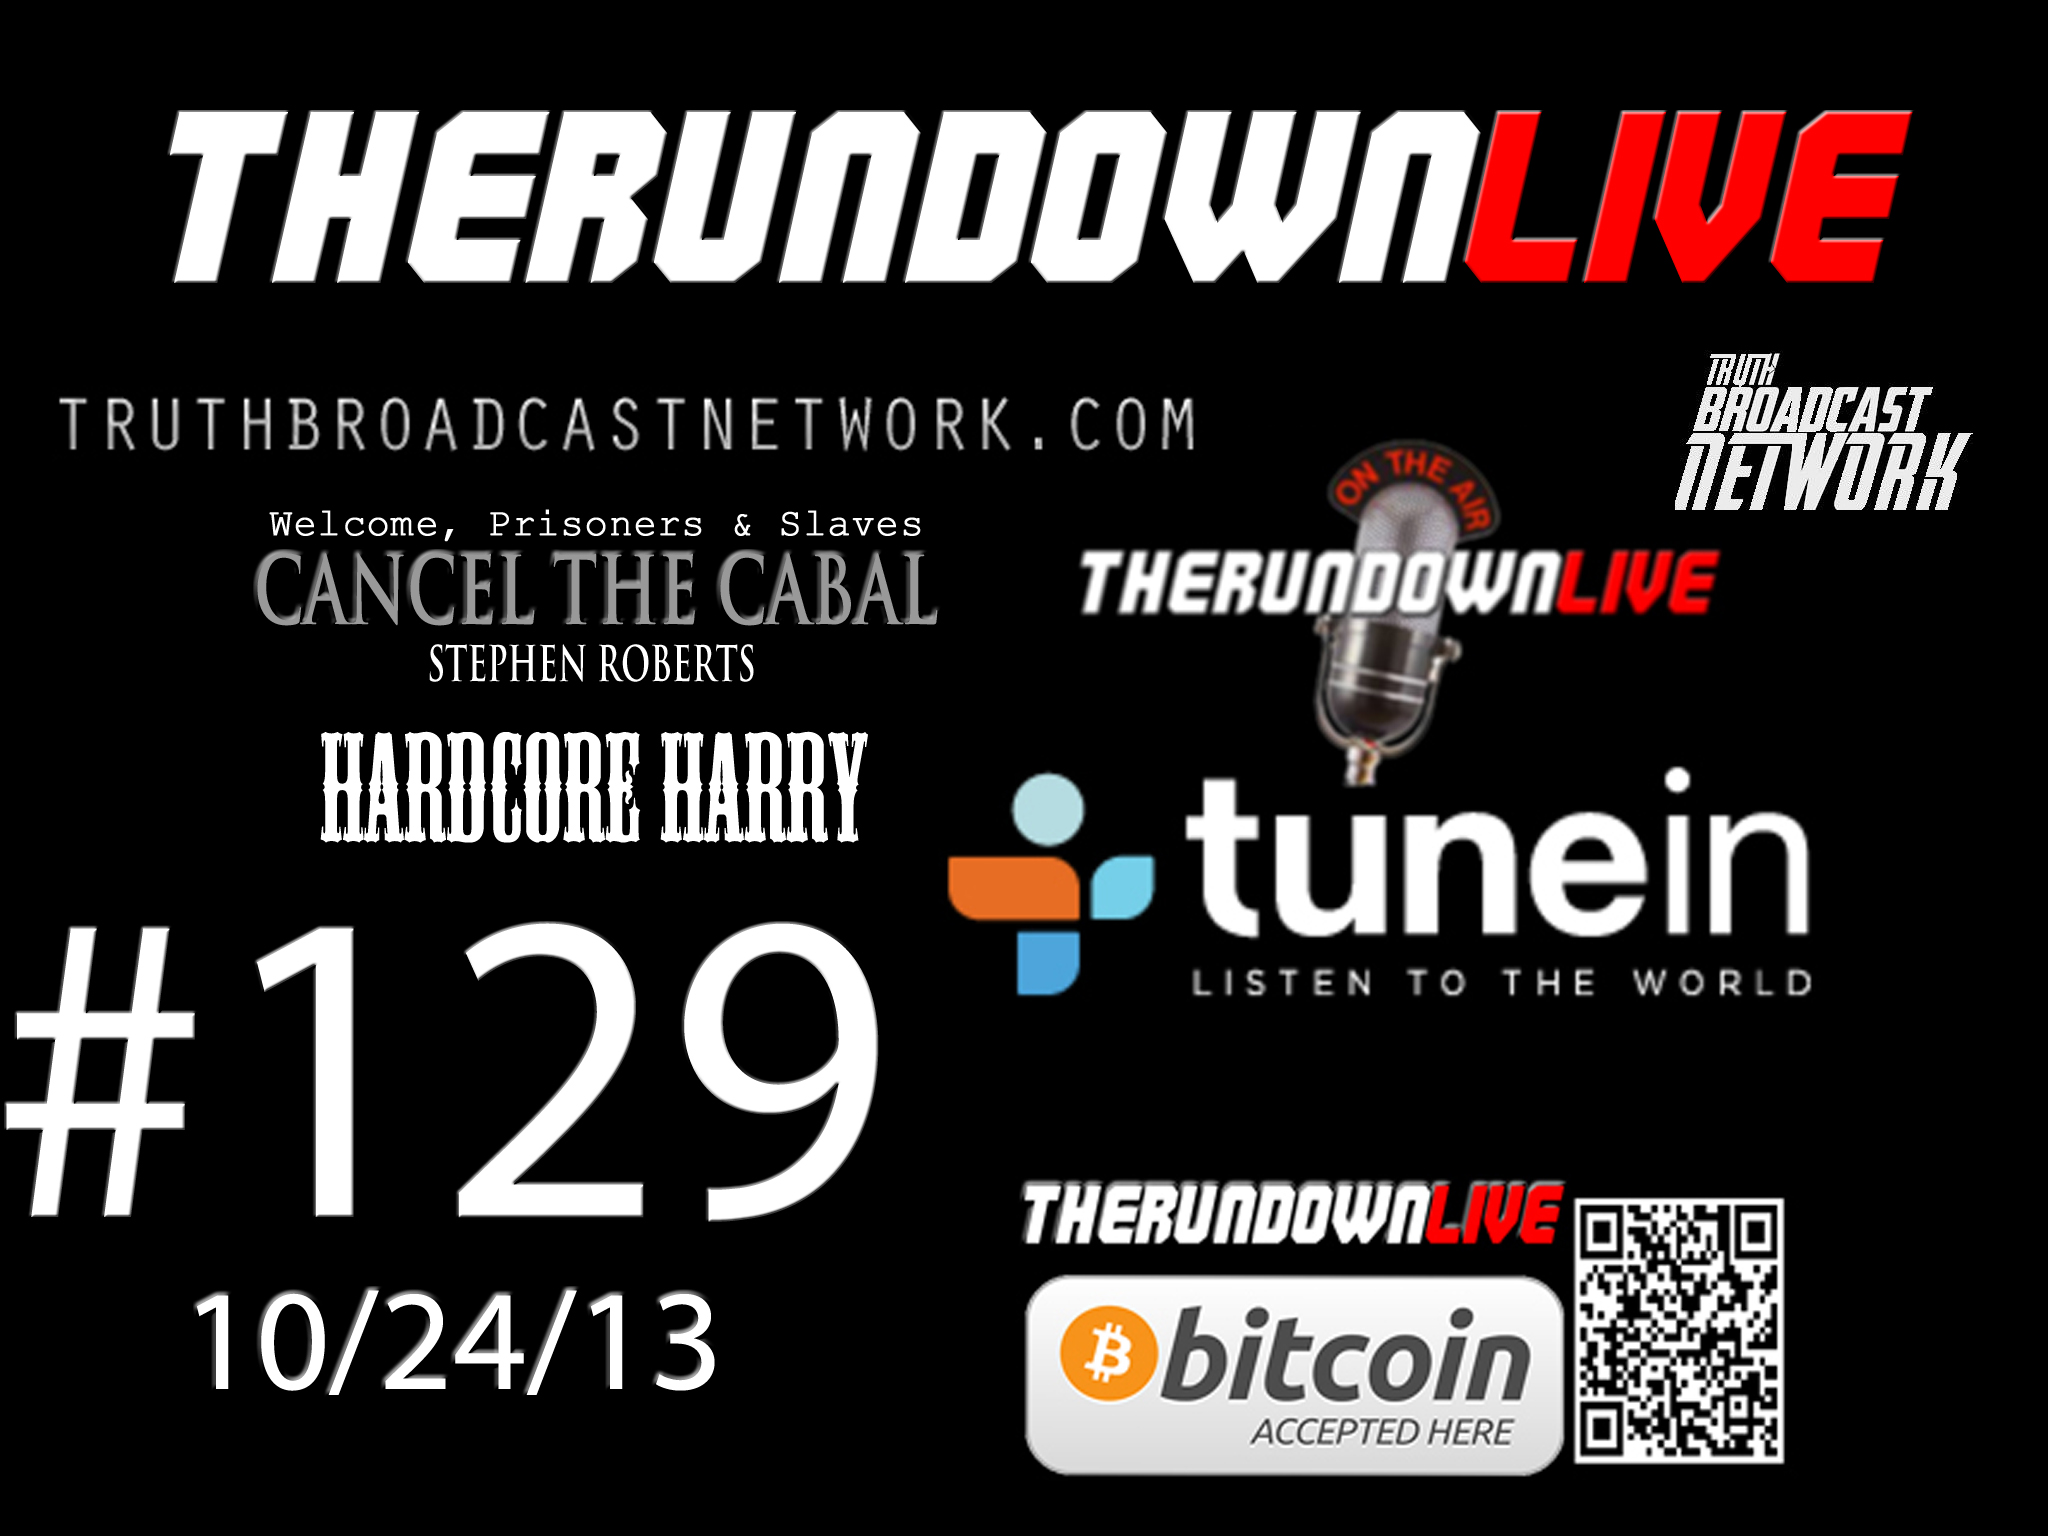 The Rundown Live #129 Truth Broadcast Network Update with Harry Link & Stephen Roberts